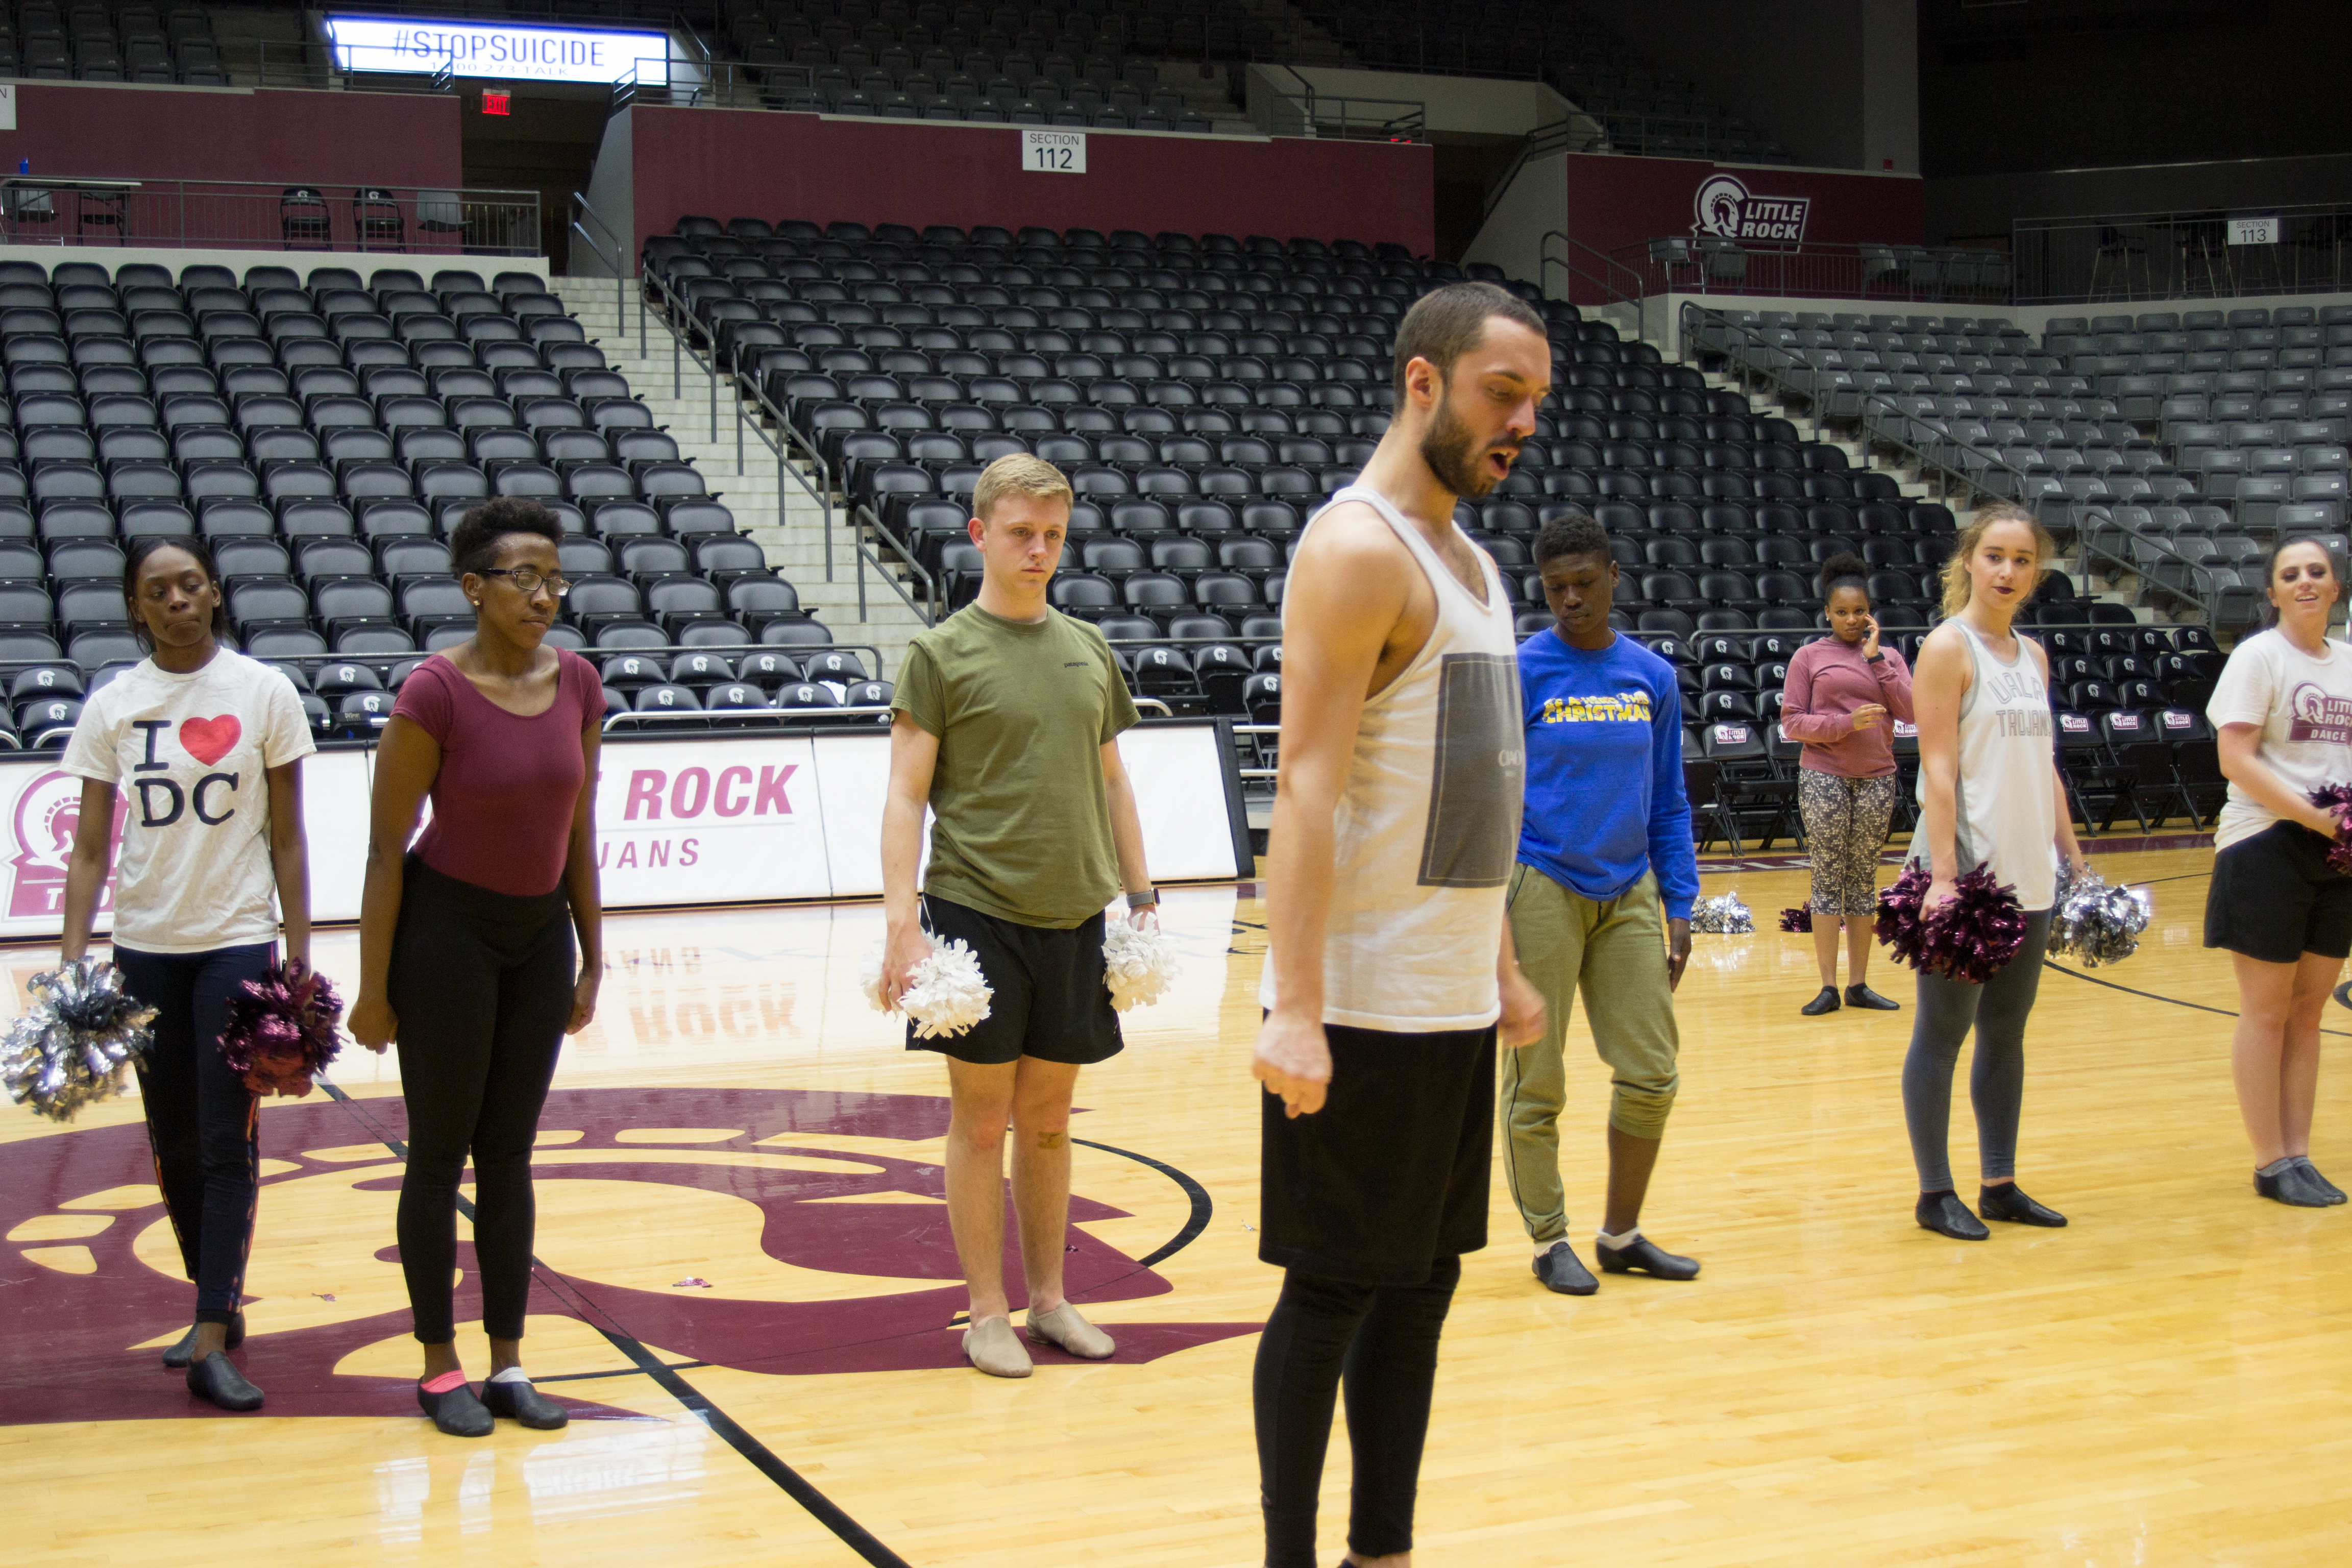 UA Little Rock Dance Coach Cameron Kuhn practice routine with his team.